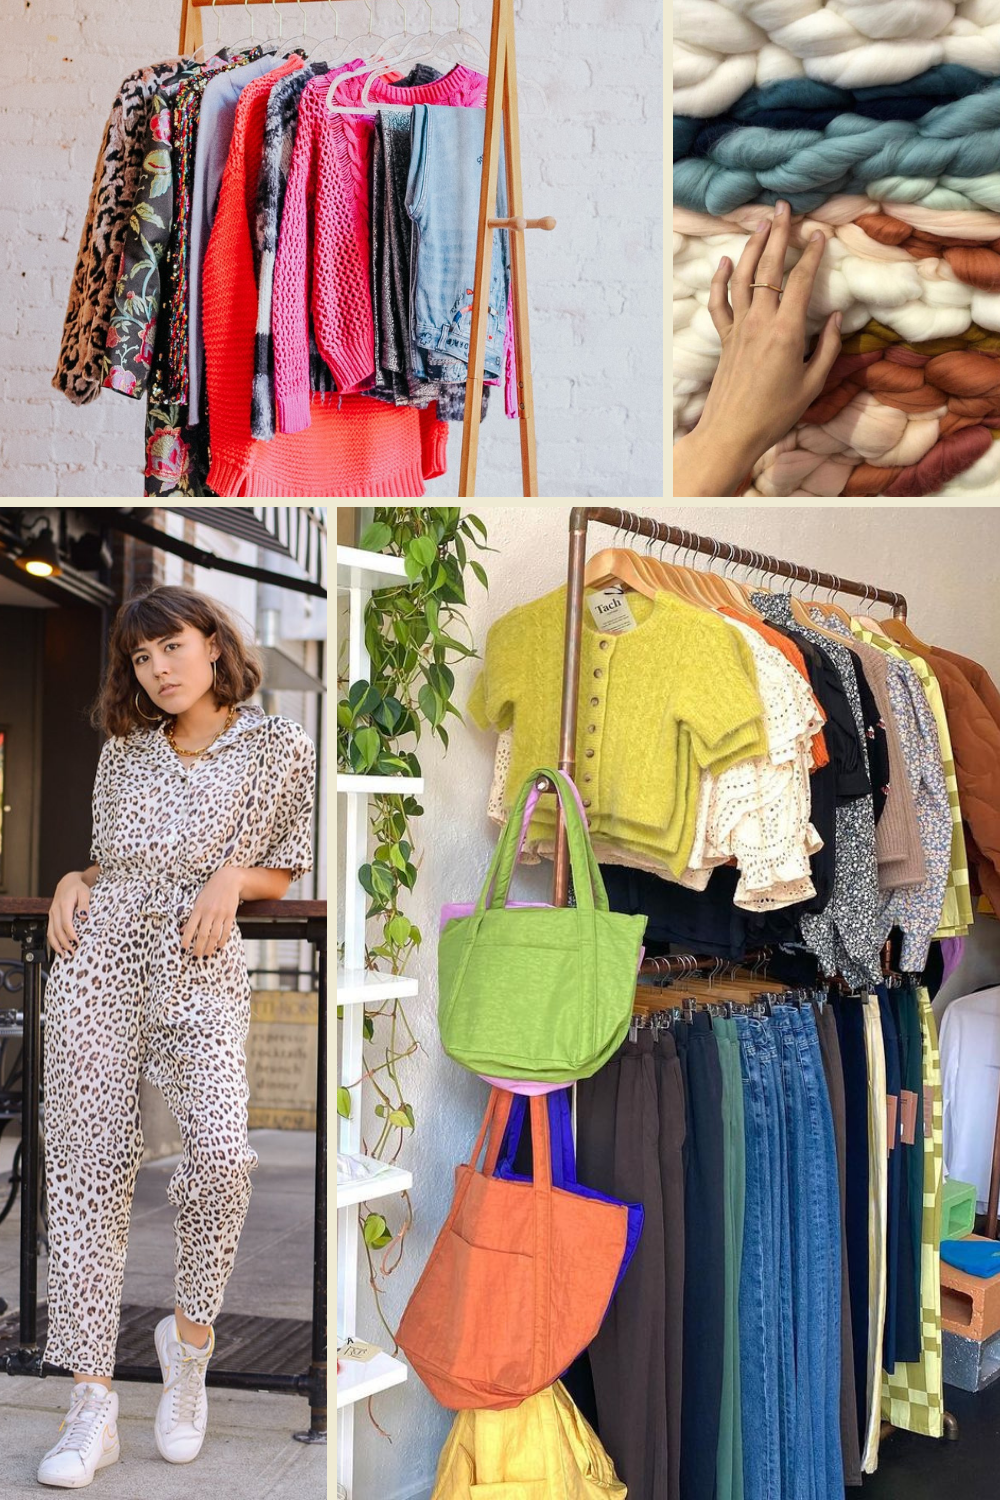 Shop Local by popular Seattle life and style blog, Whit Wanders: collage image of a woman wearing a leopard print jumpsuit and clothes hanging on portable clothing racks.